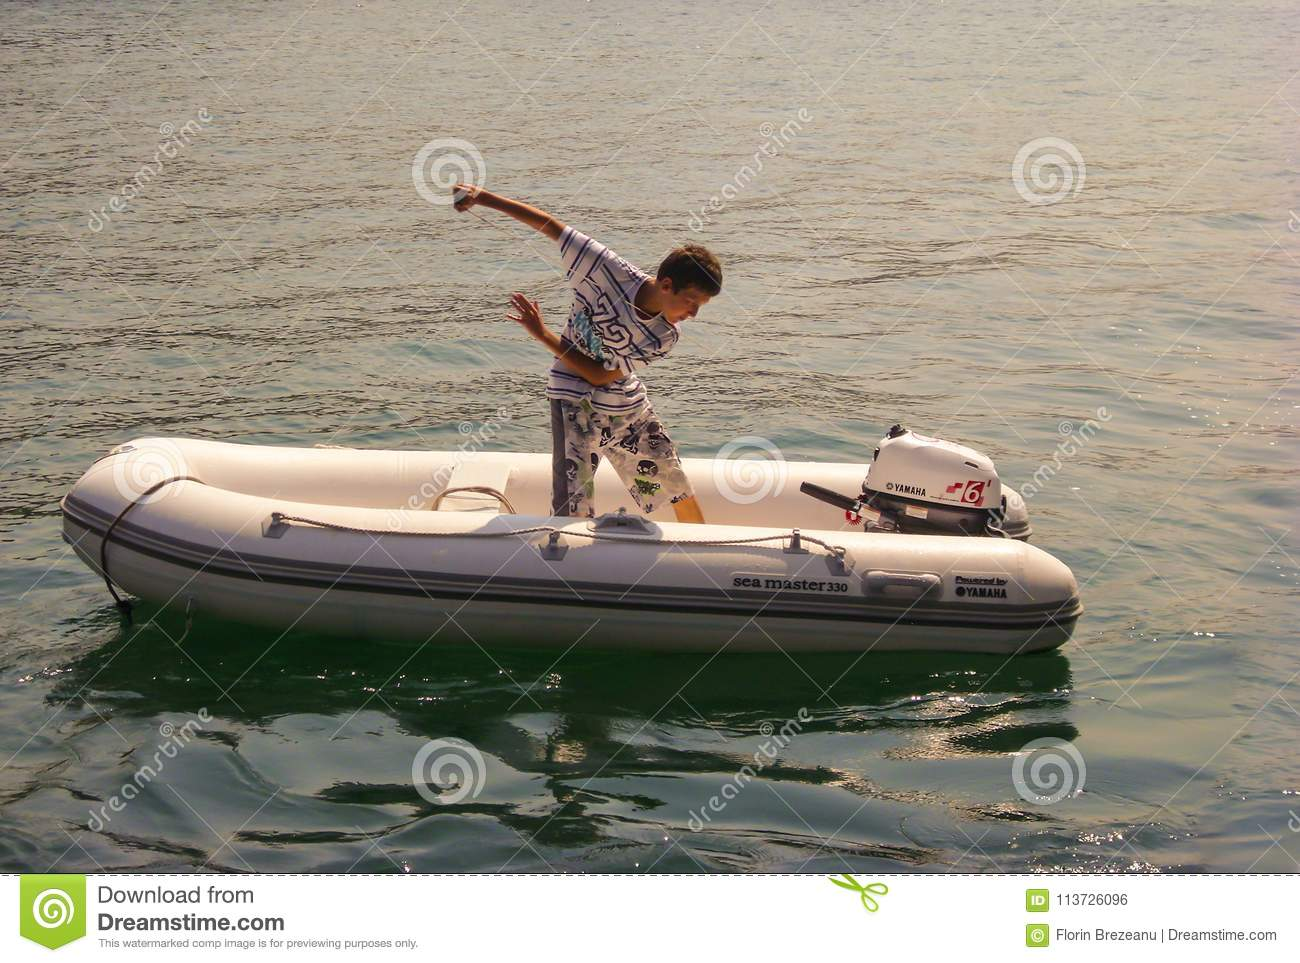 Kusadasi, Turkey - June 17 2012 : A Boy Is Starting The Outboard